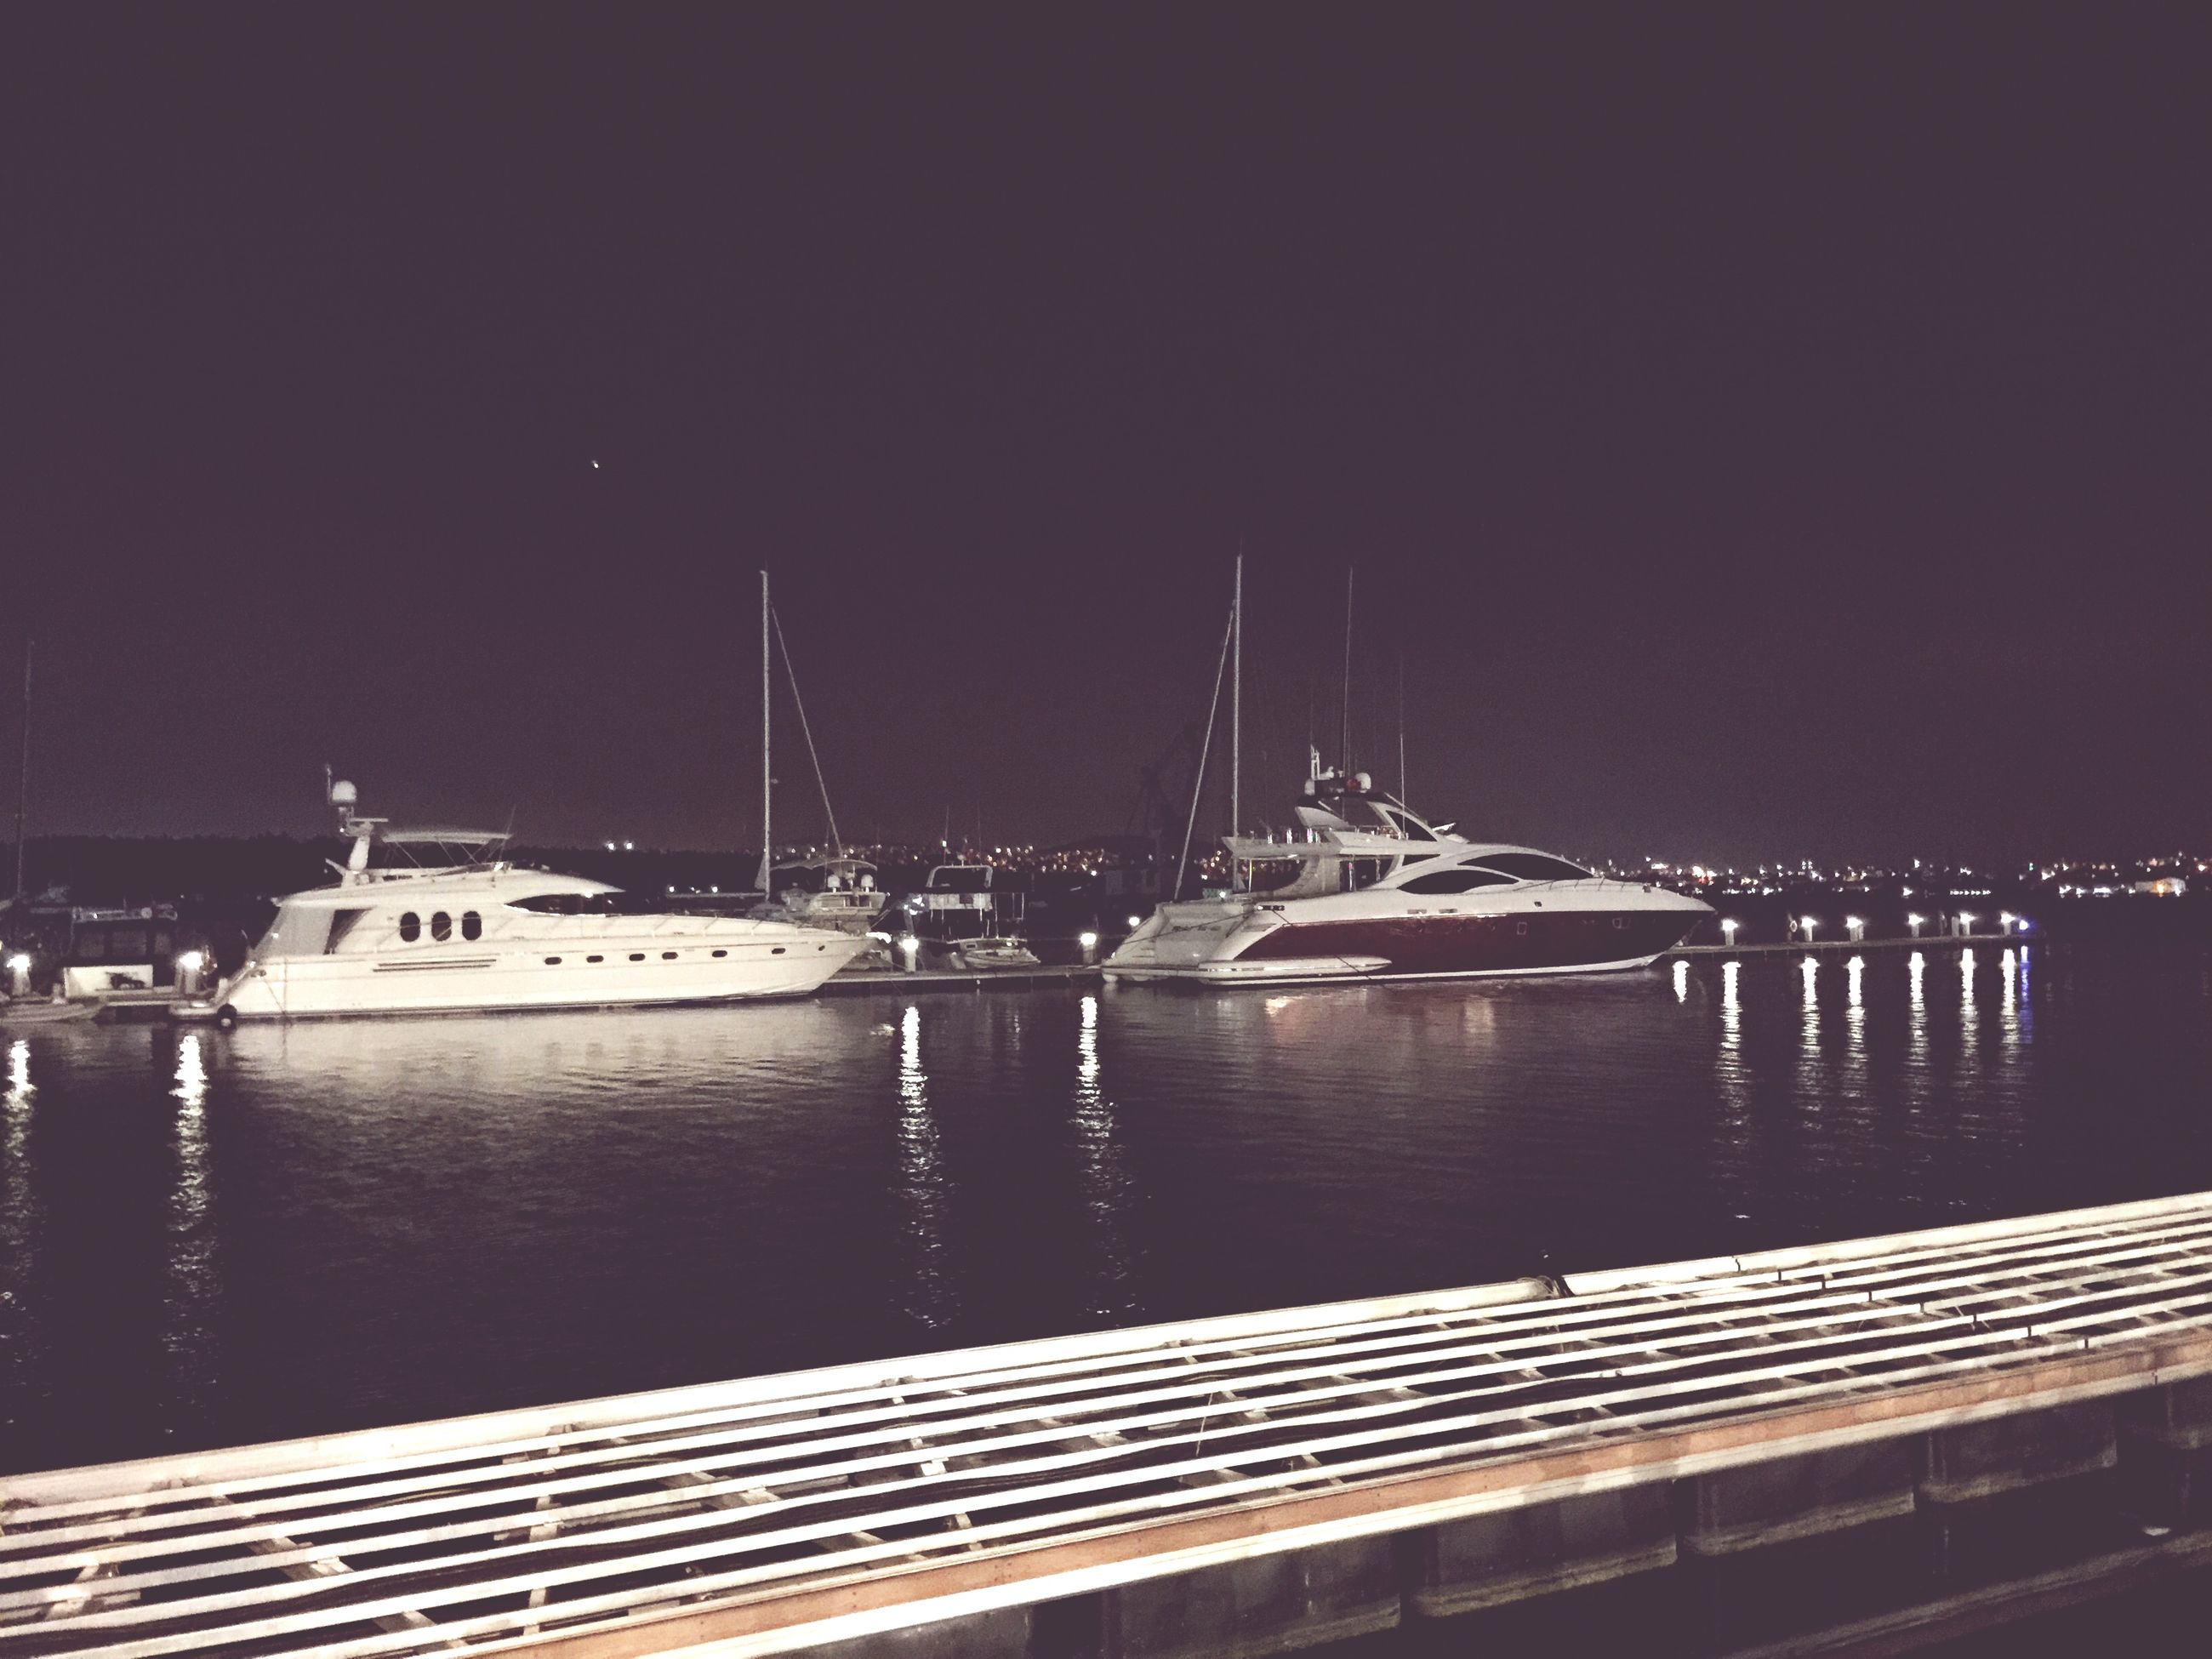 water, night, illuminated, transportation, clear sky, built structure, railing, river, reflection, architecture, nautical vessel, bridge - man made structure, connection, pier, copy space, sea, street light, bridge, boat, sky